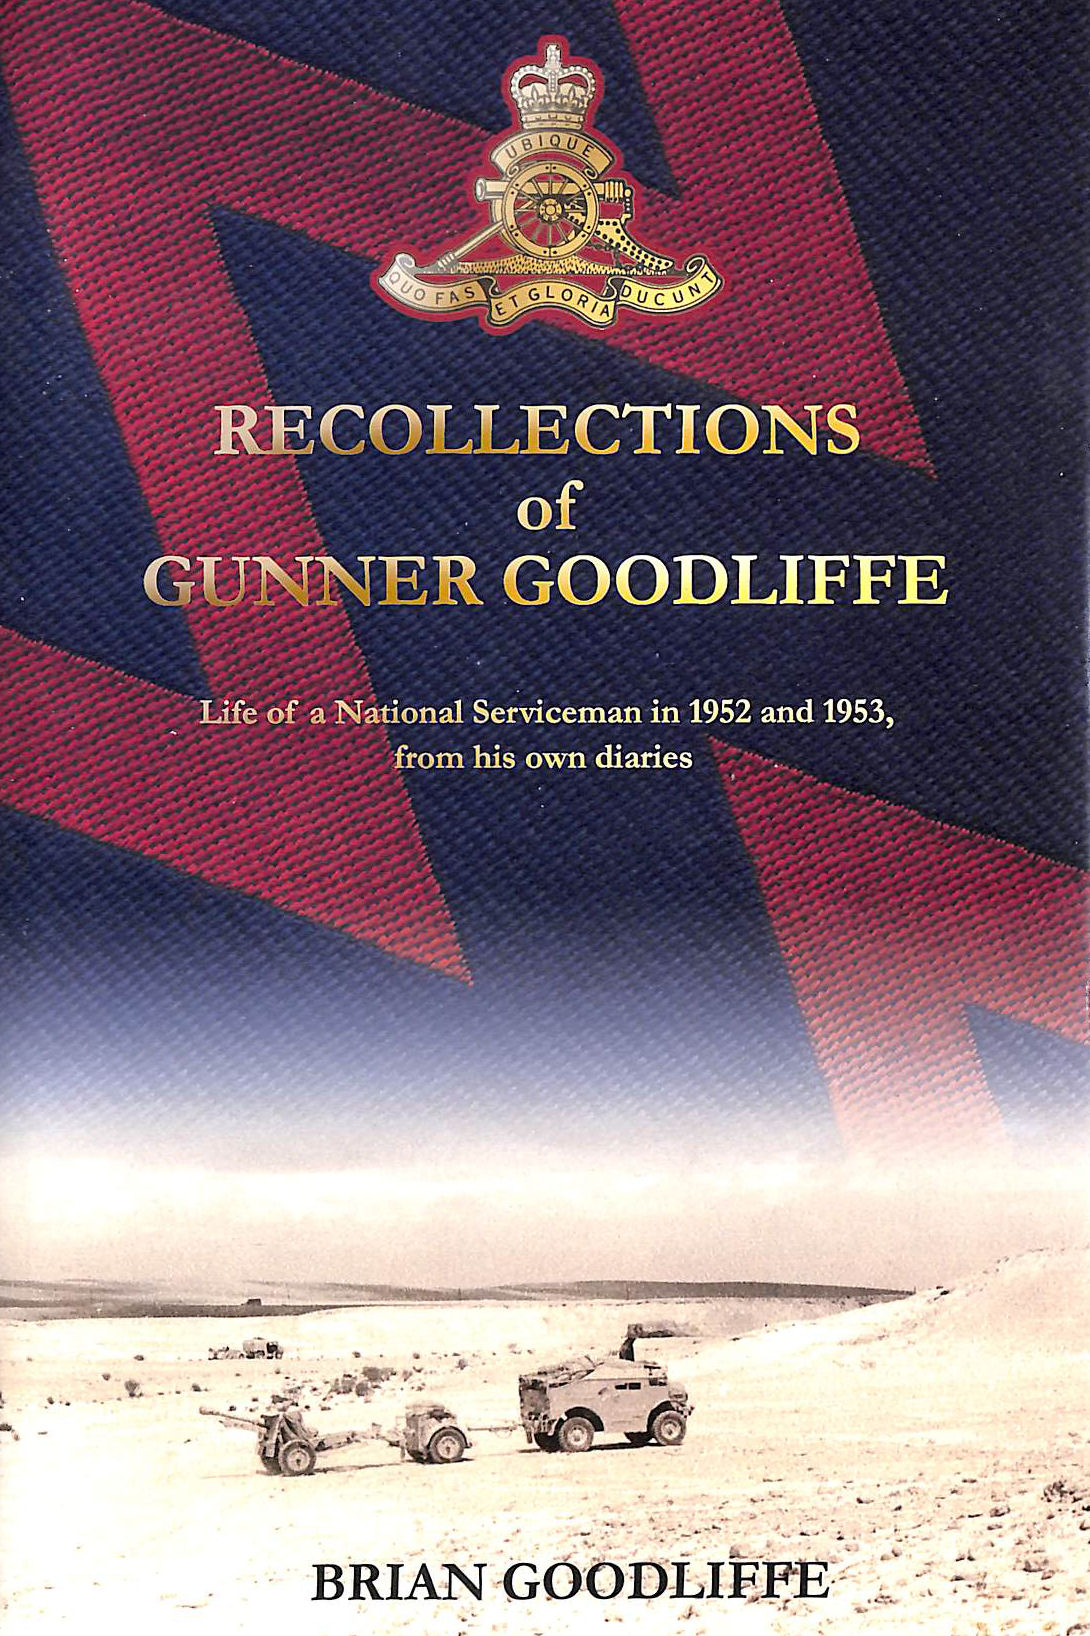 Image for Recollections of Gunner Goodliffe, Life of a National Serviceman in 1952 and 1953, from His Own Diaries